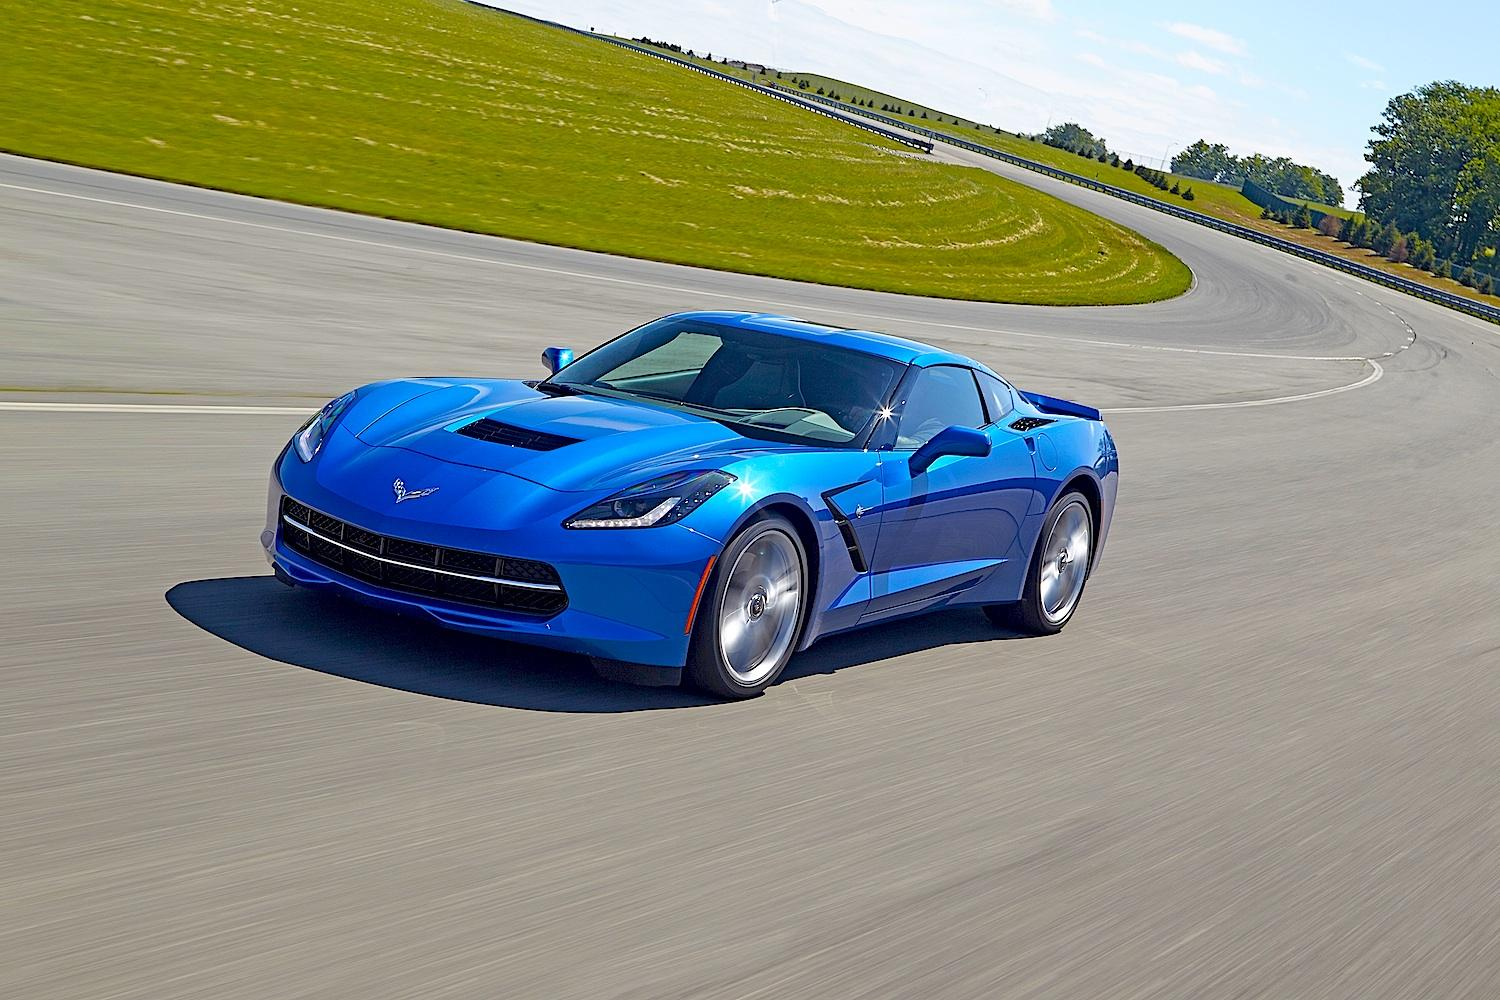 Z07 Version Of New Corvette Stingray May Pack 600